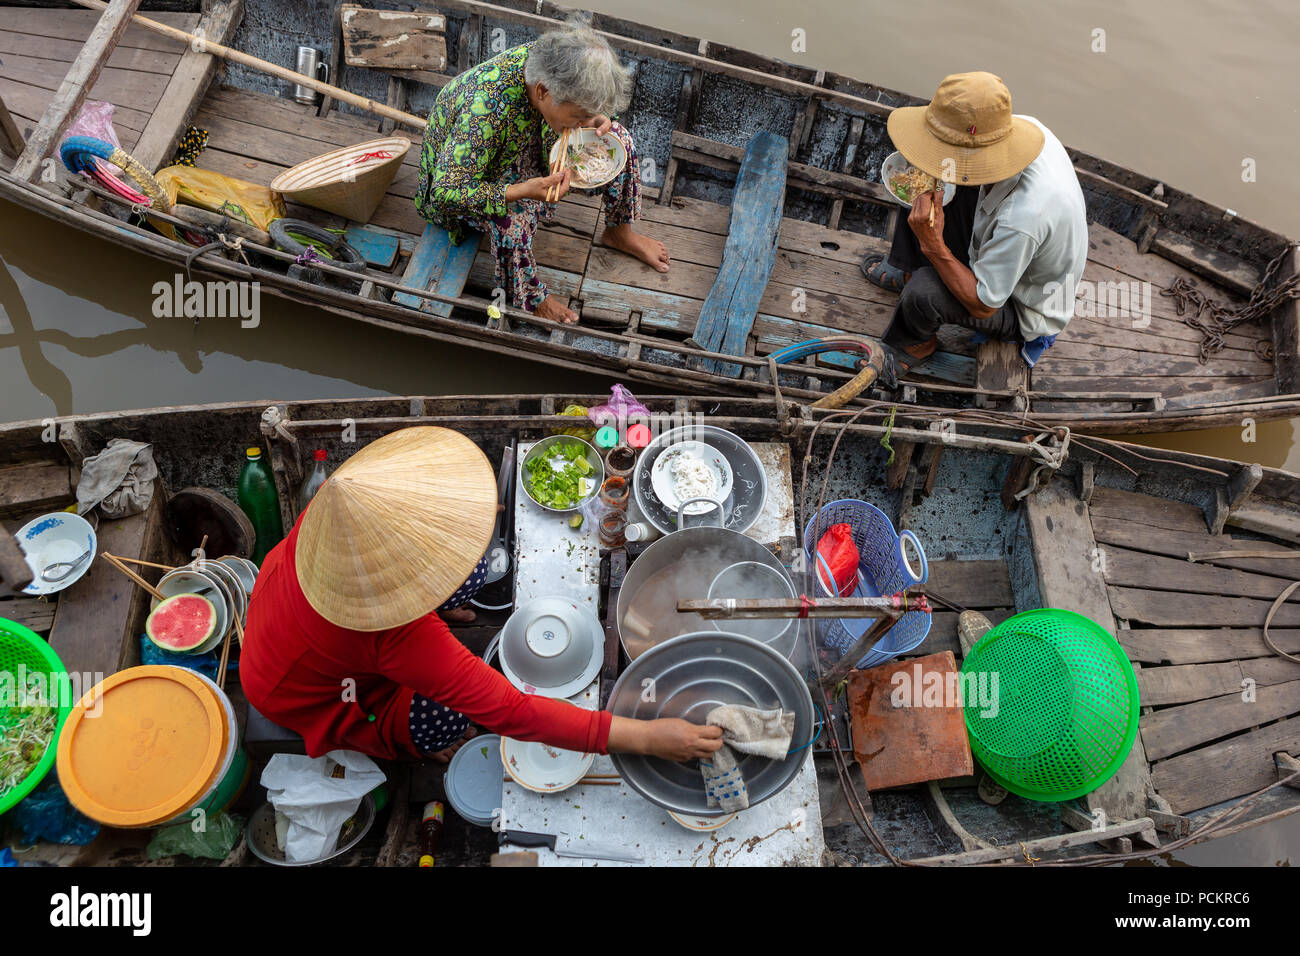 Soc Trang, Vietnam - April 5, 2018: Buying and selling agricultural products on Mekong River. Boat women sell fruit, flowers, agricultural products on Stock Photo